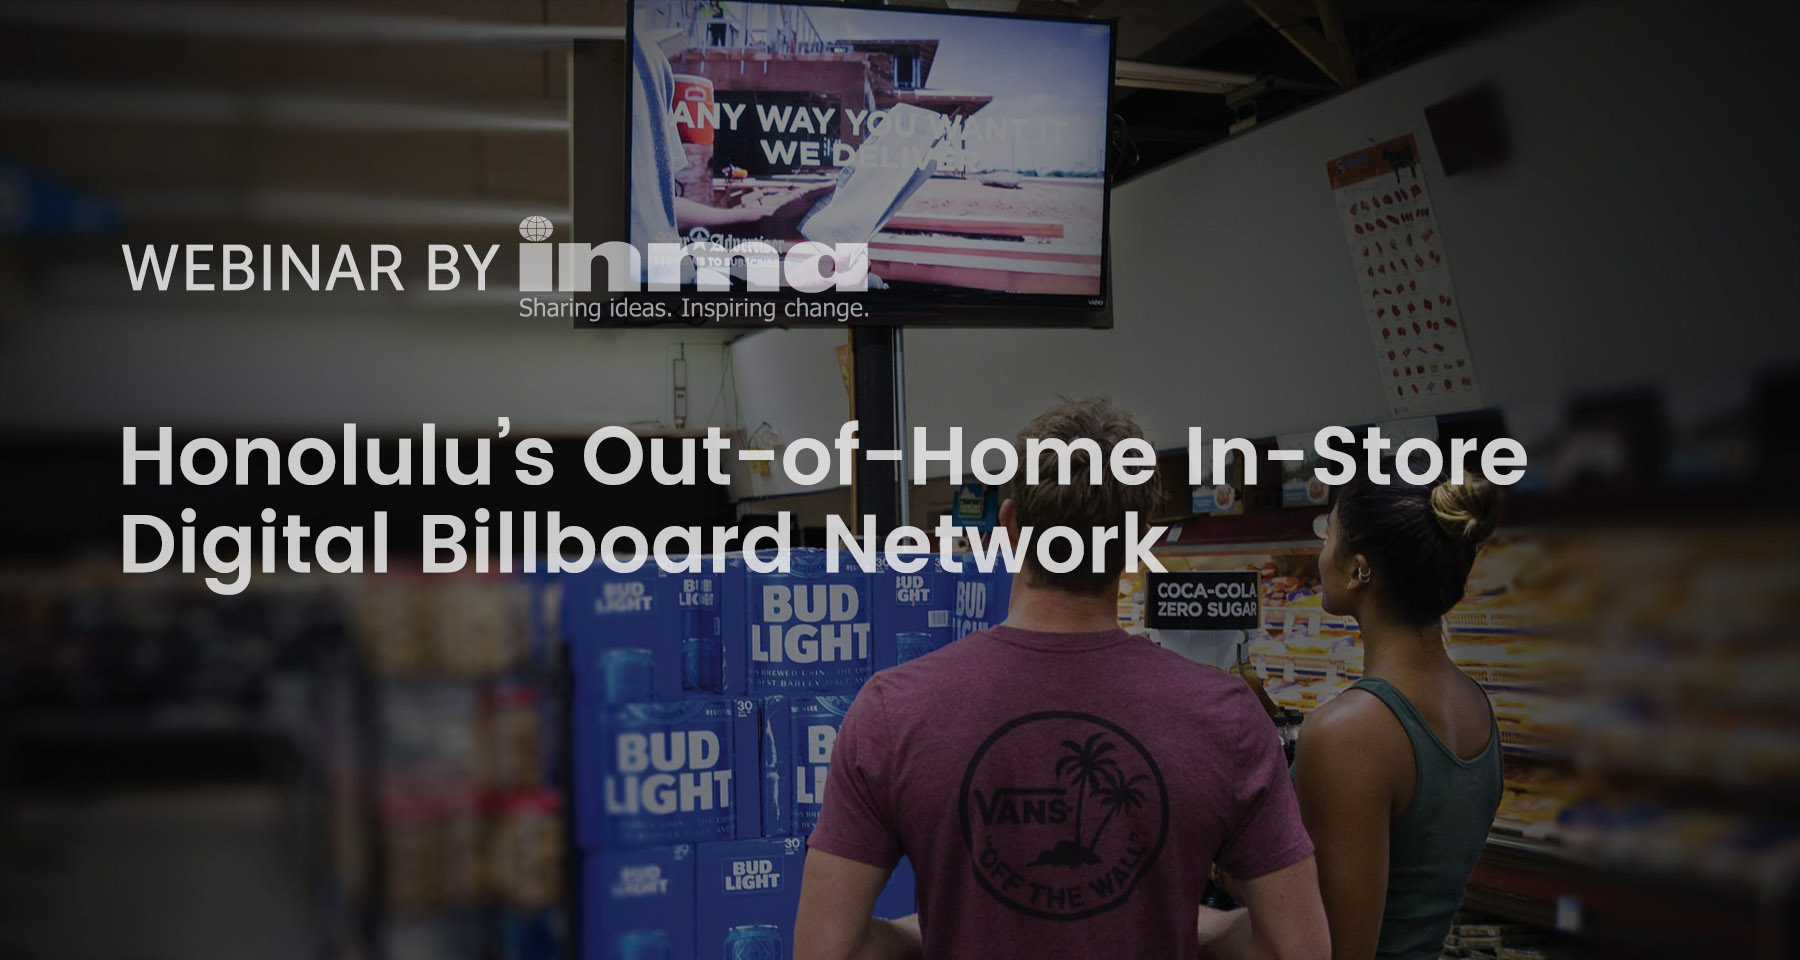 Upcoming INMA Webinar: Honolulu Star-Advertiser's in-store digital billboard network